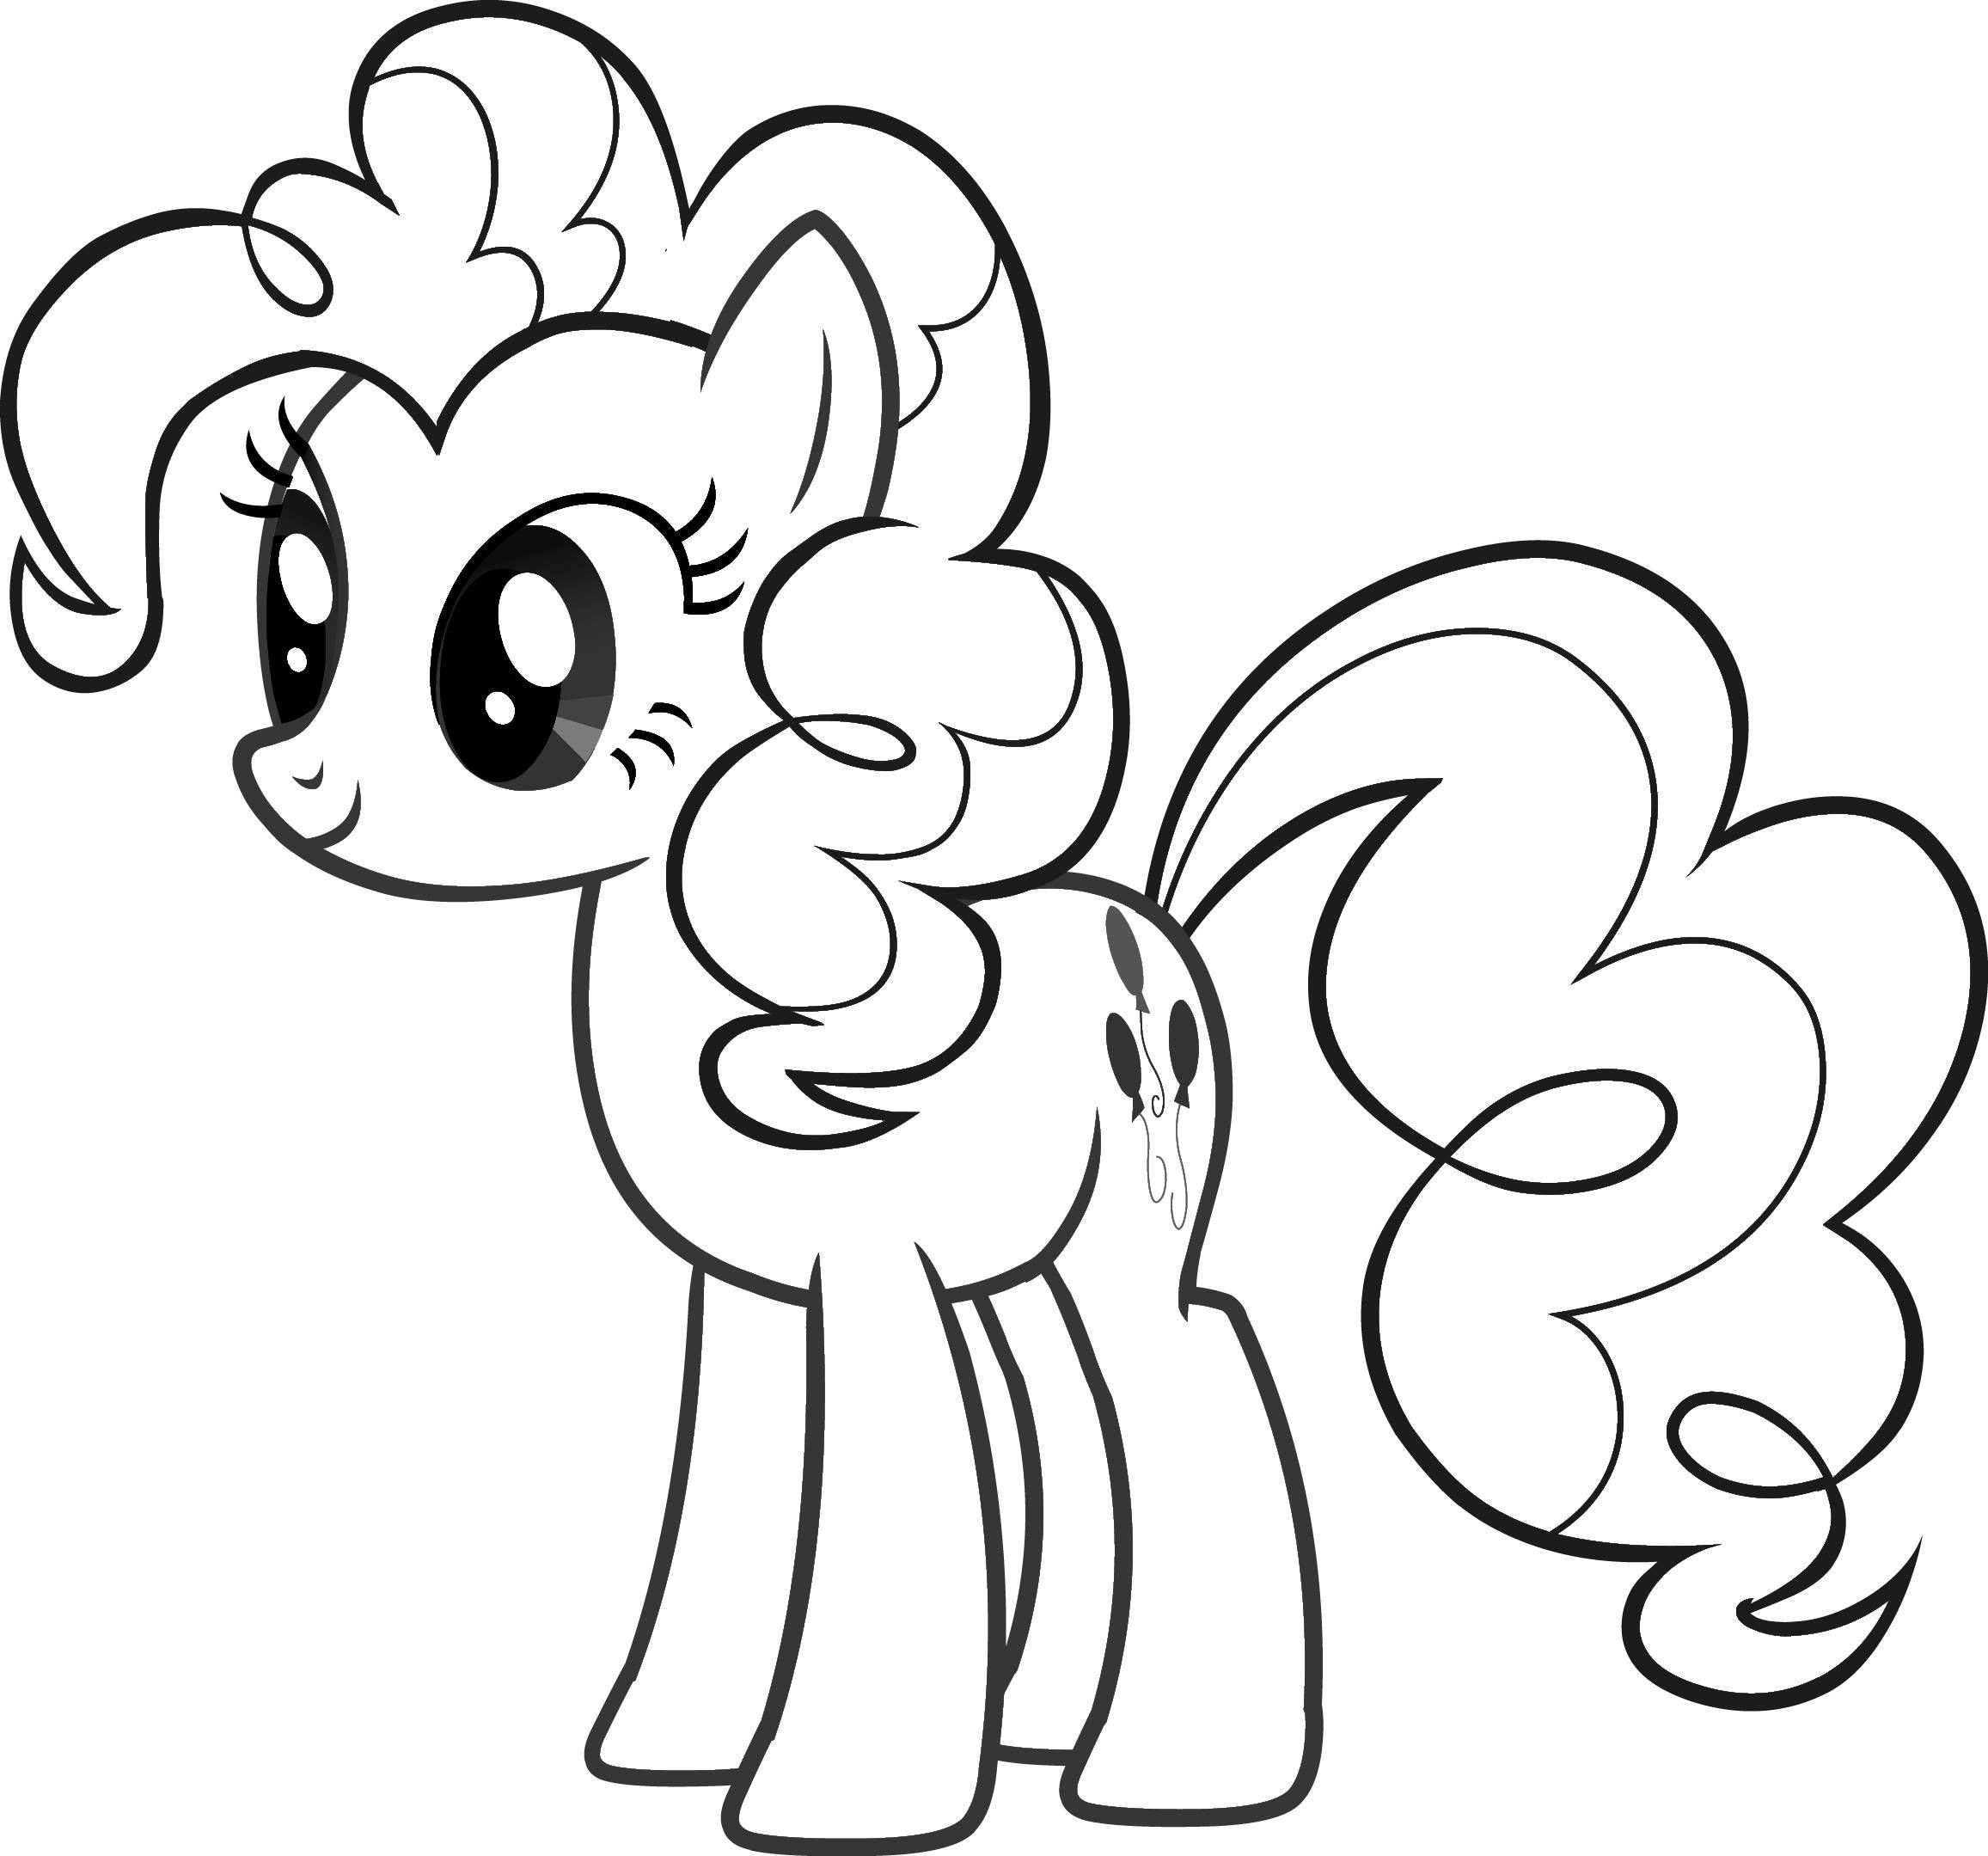 2313x2159 Free Printable My Little Pony Coloring Pages For Kids Colorear